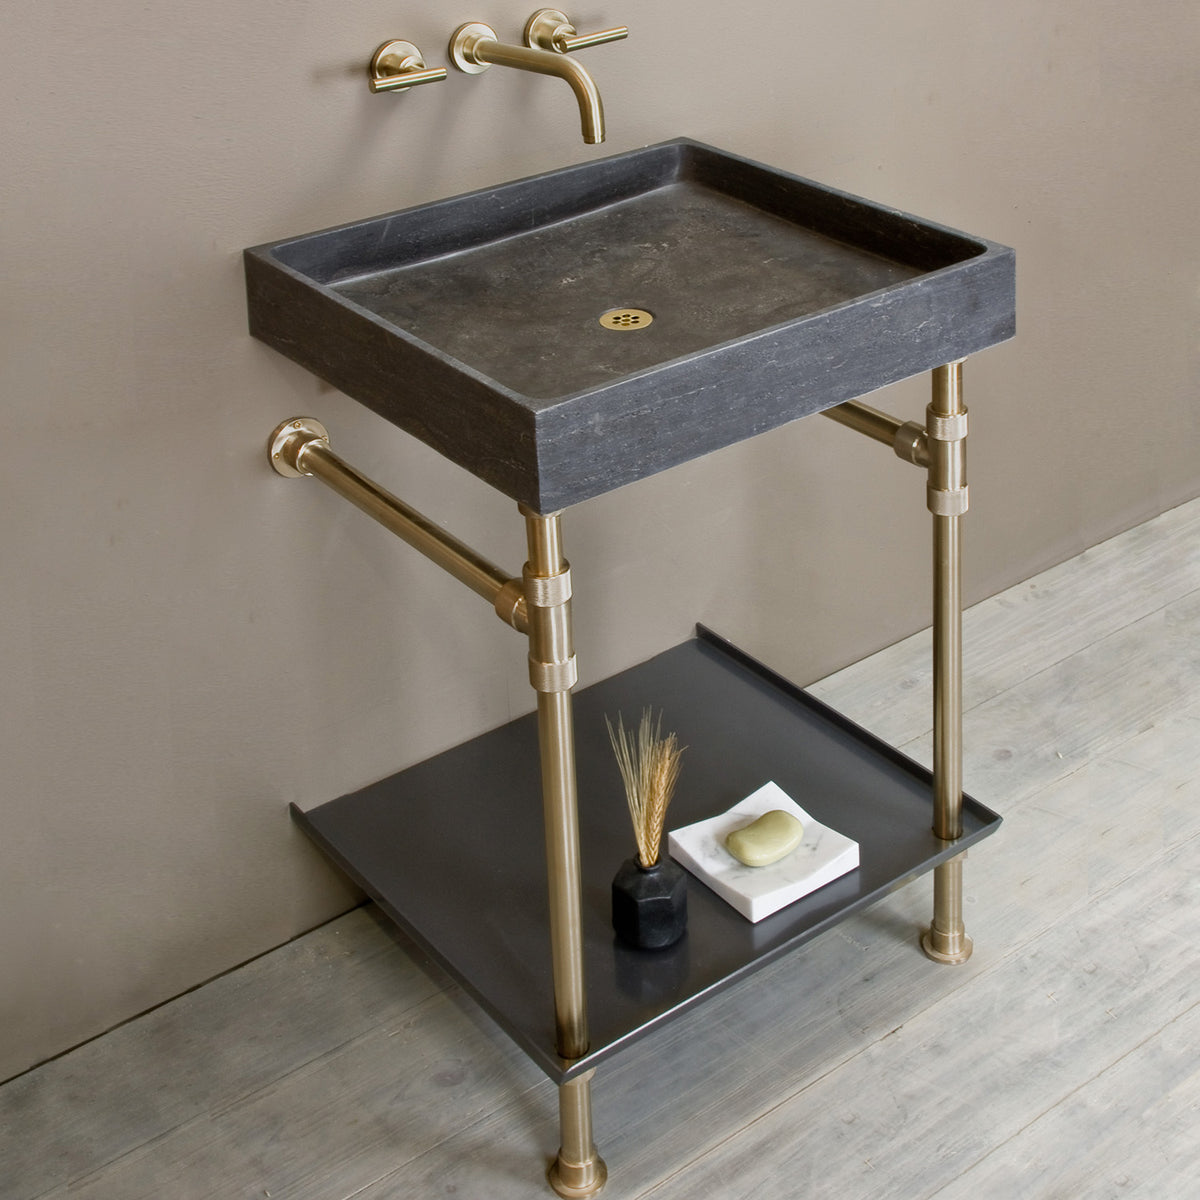 Ventus Bath Sink with Elemental Tray Vanity